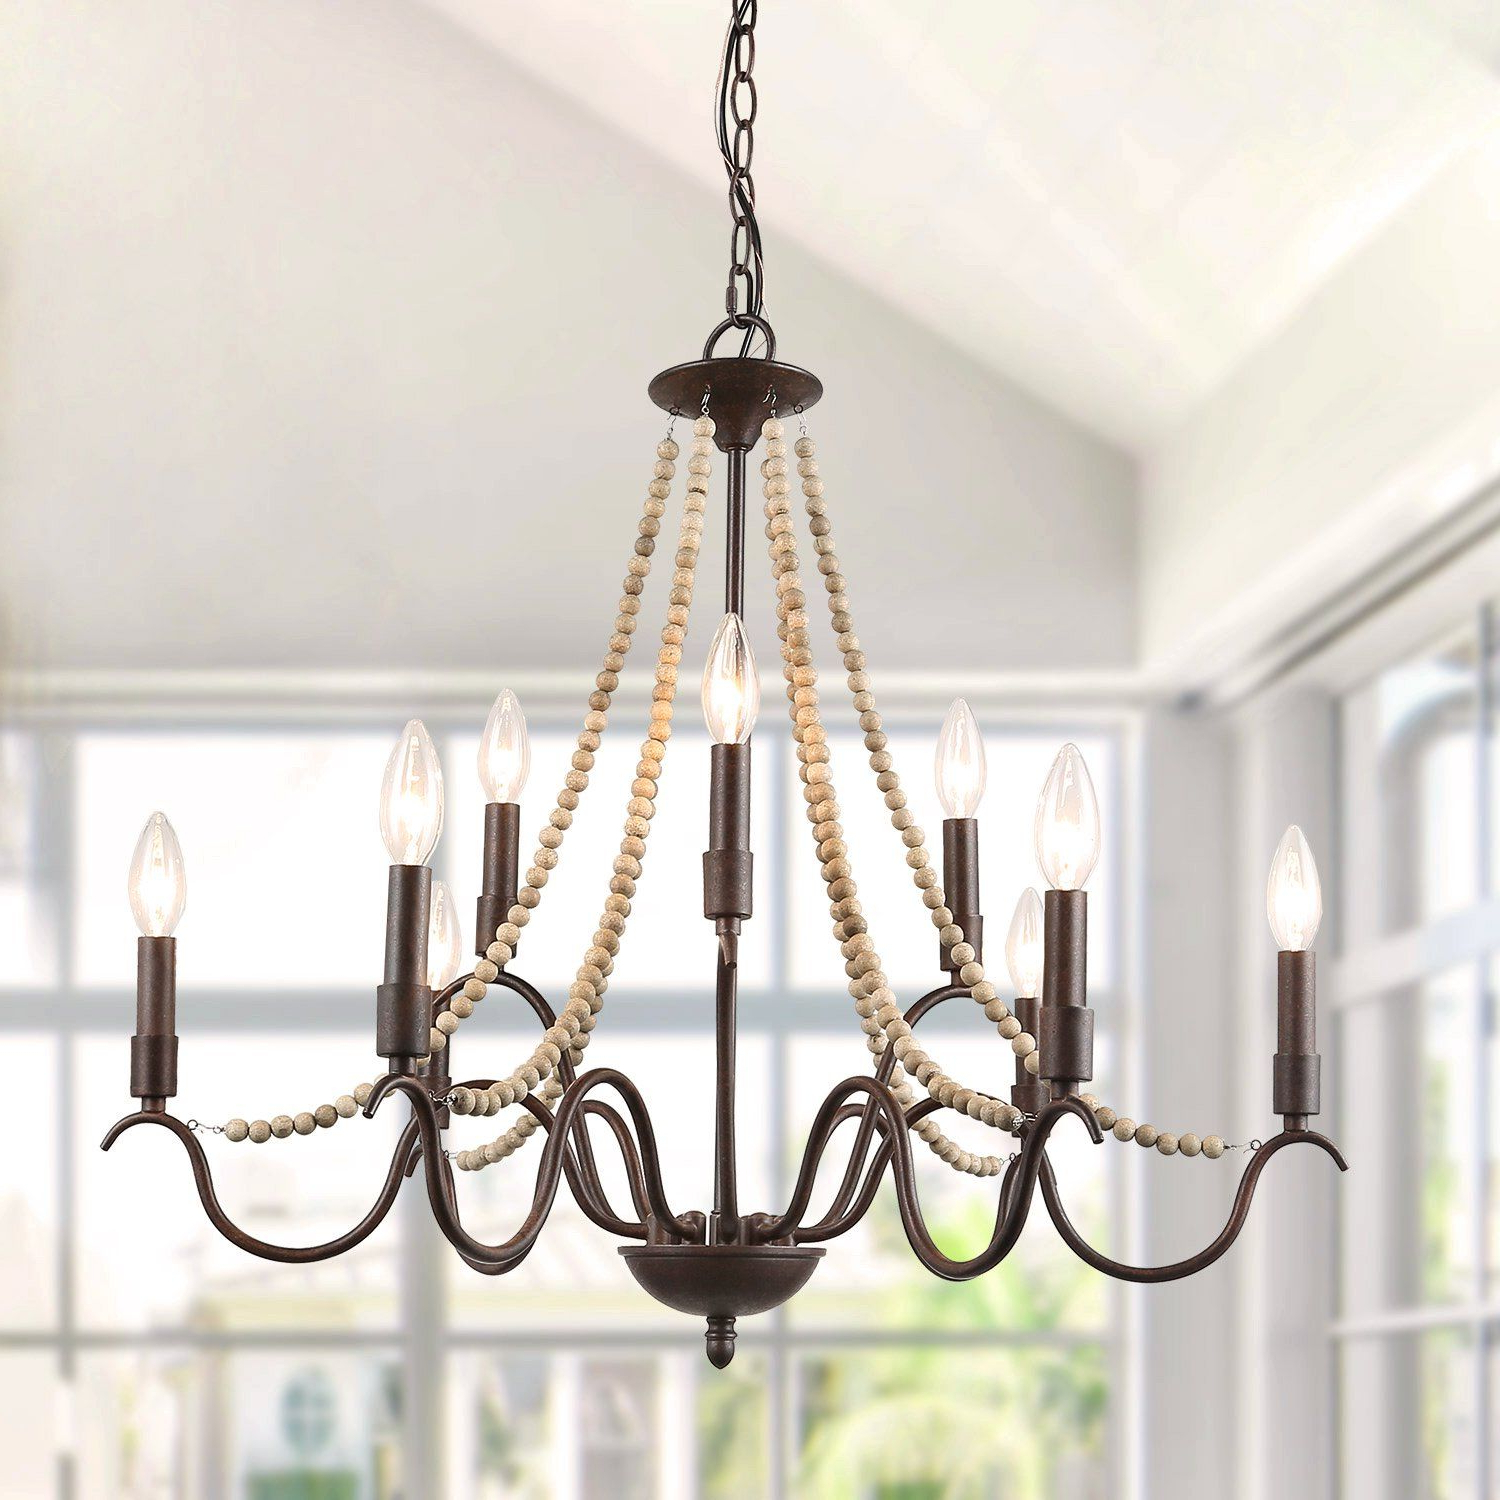 Current Duron 5 Light Empire Chandeliers Throughout Lnc Chandeliers French Country Wood Bead Candle Style (View 6 of 25)